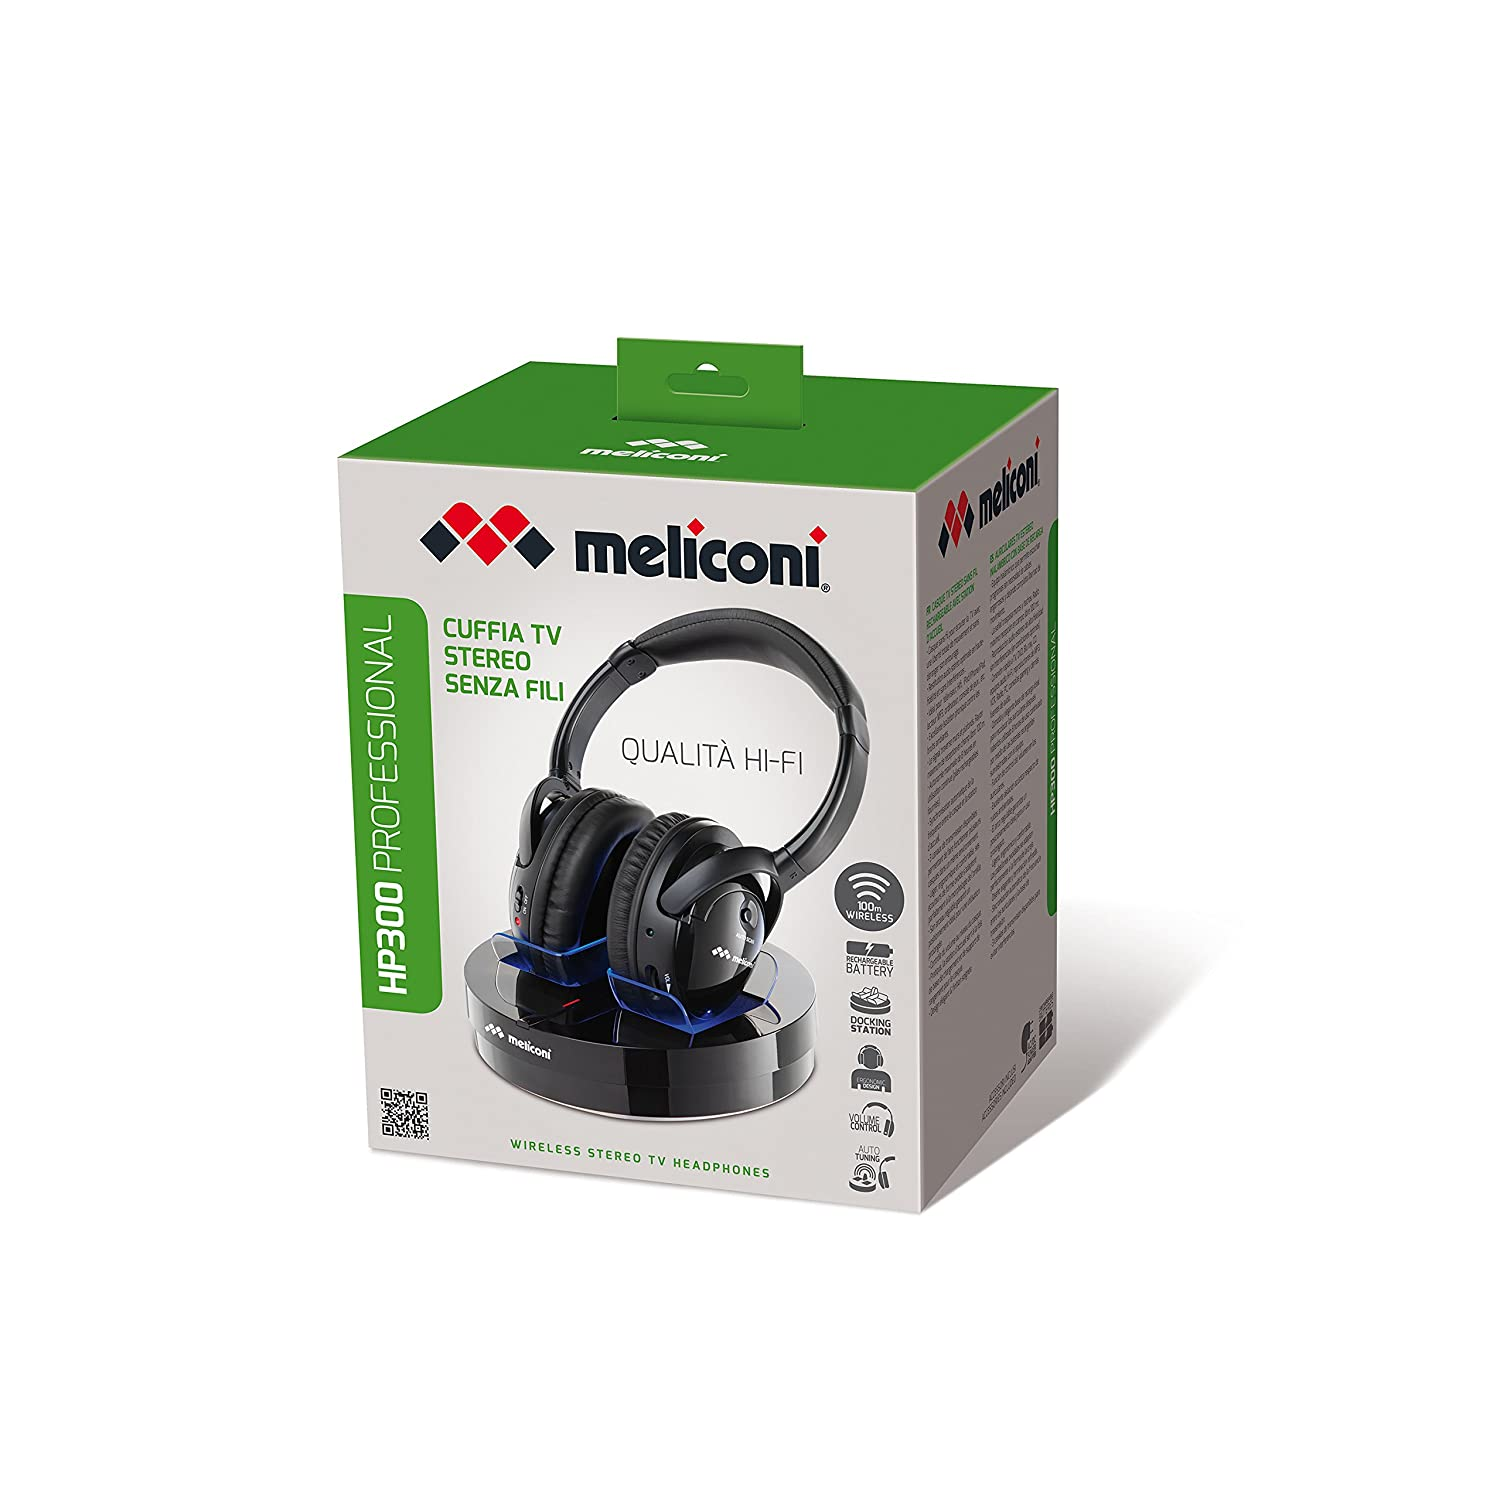 Meliconi Hp 300 Professional -Wireless Tv Stereo  Amazon.co.uk  Electronics 09b693d5f136